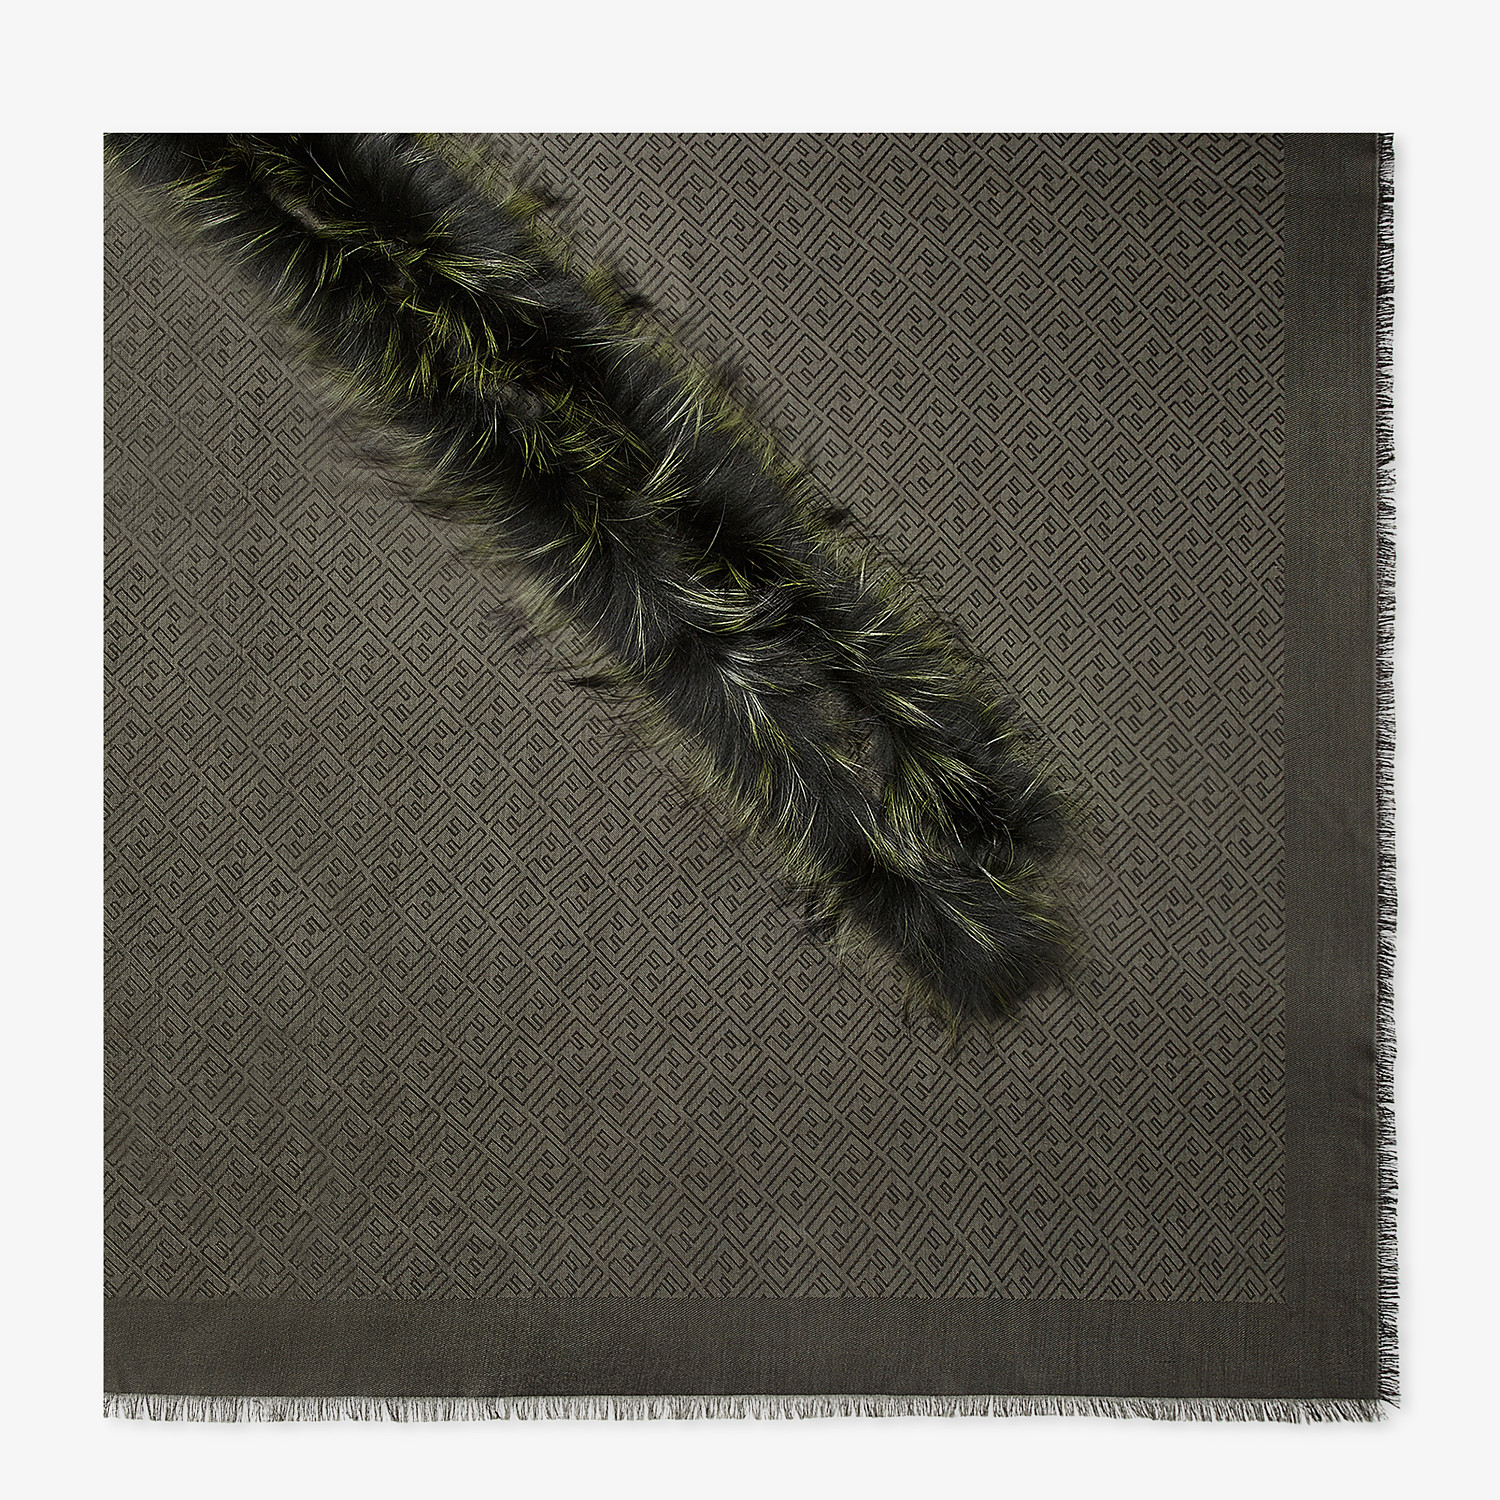 FENDI TOUCH OF FUR SHAWL - Shawl in silk, wool and fur - view 1 detail